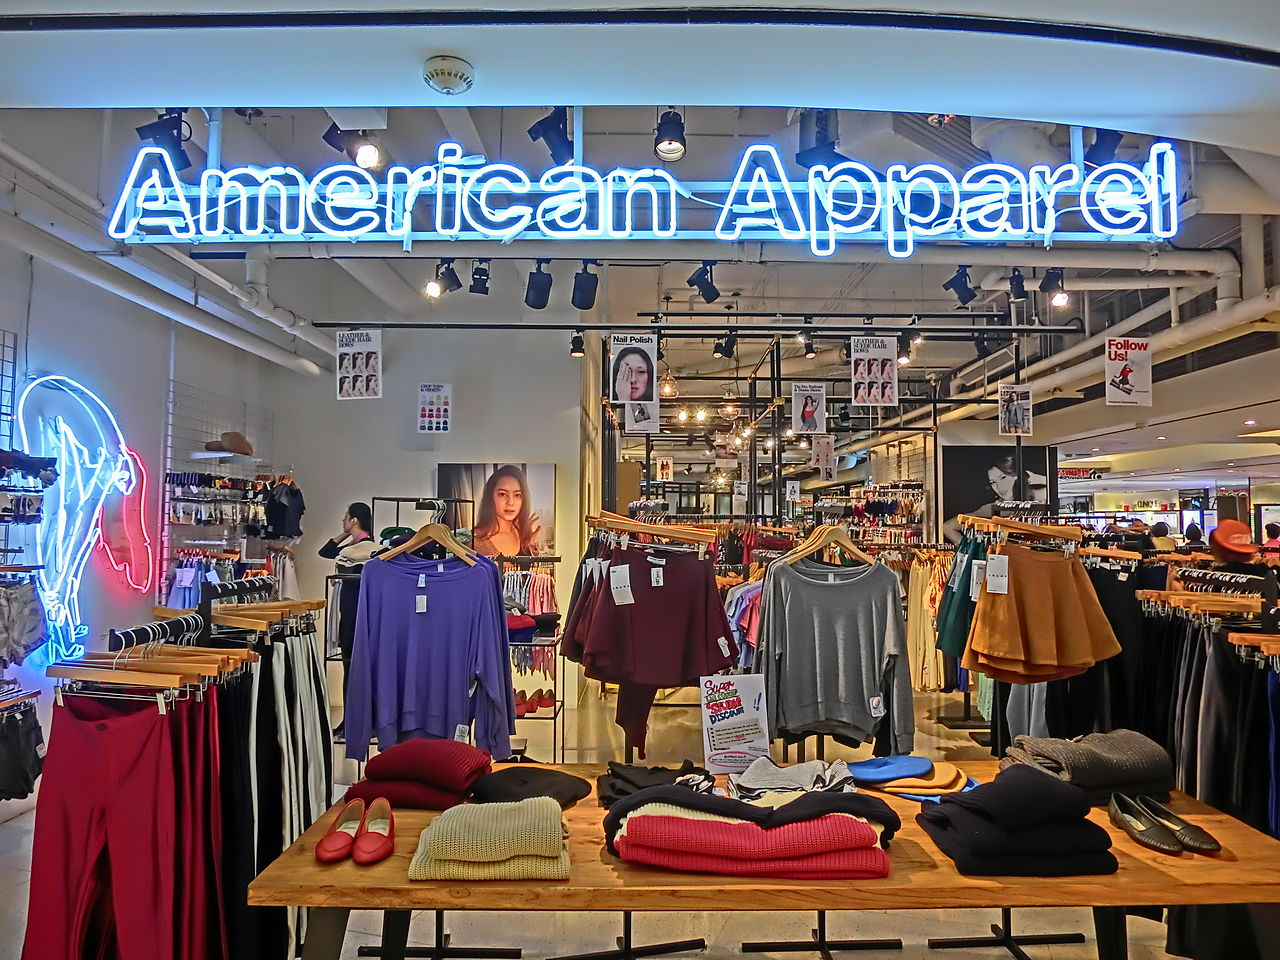 All American Clothing is your source for USA made jeans, shirts, outerwear and more!. ACCOUNT CONTACT MY CART. GO. 0. I ordered these jeans after looking high and low for a store that sold American made jeans. To my surprise, I discovered that no such store exists anymore. Thankfully, I .